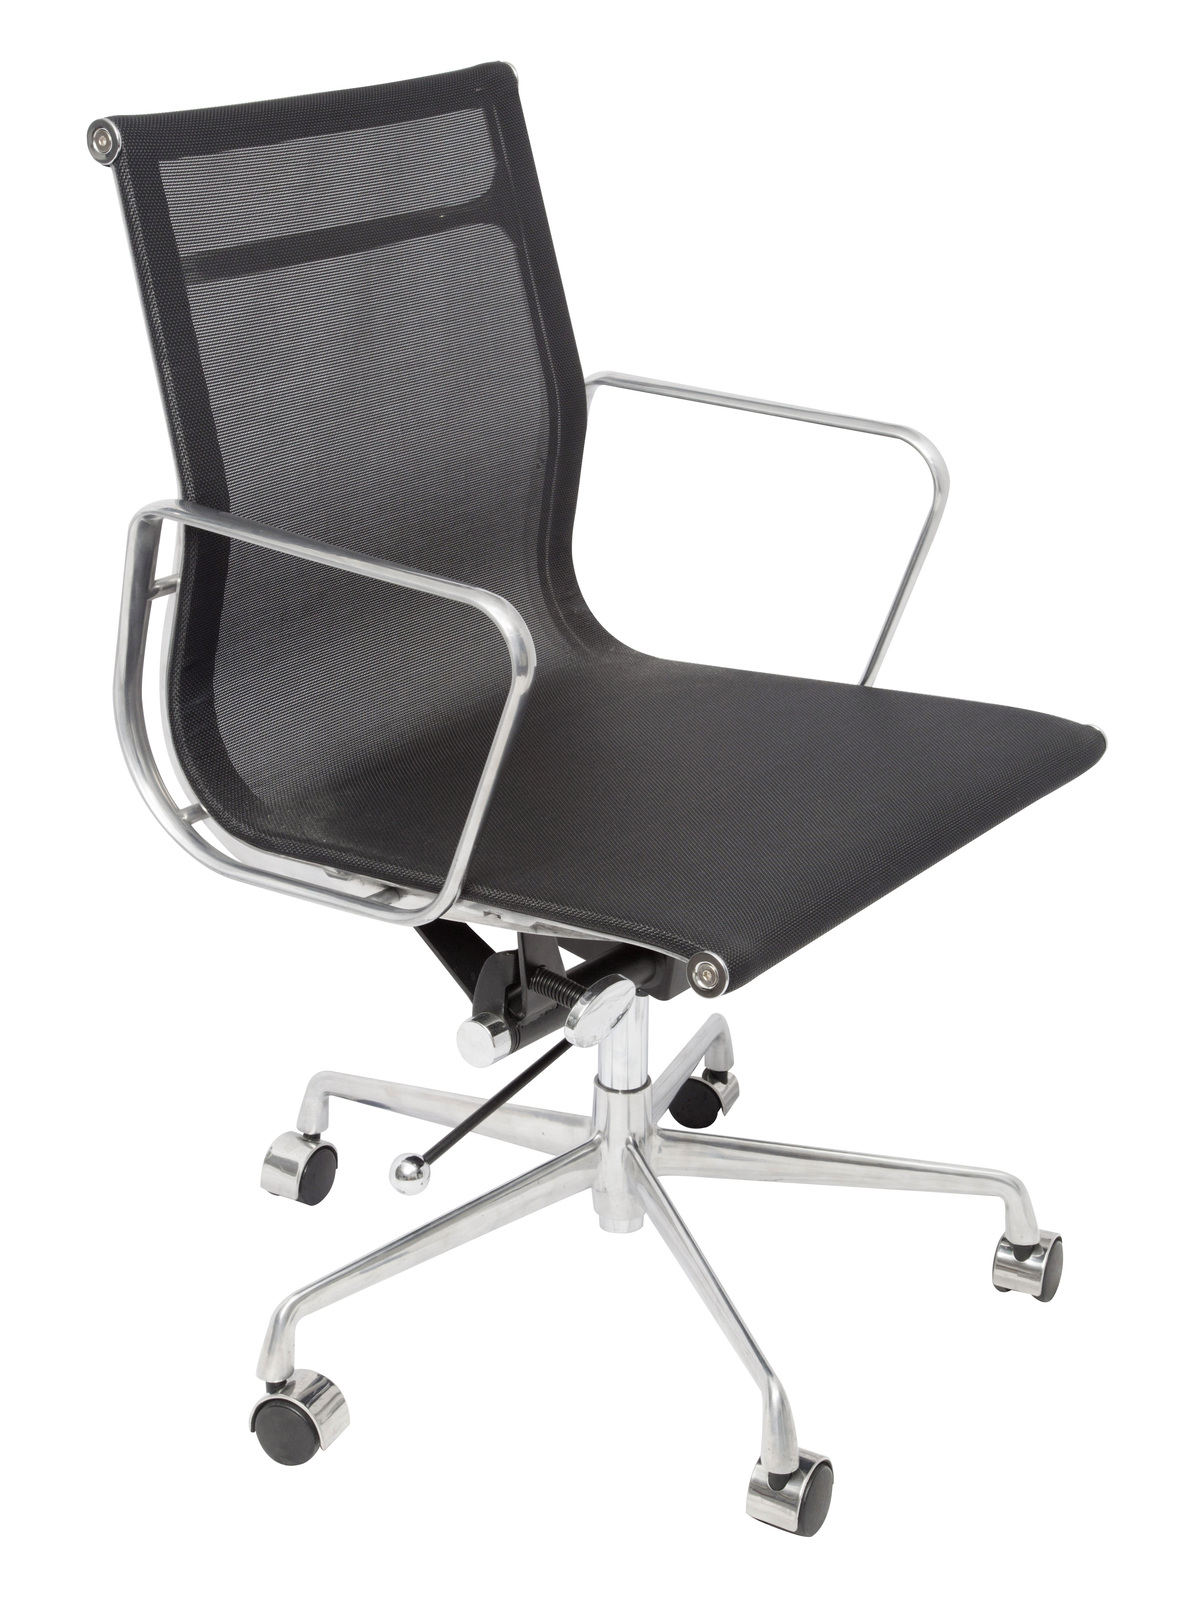 seat covers for chairs with arms doctor office wm600 mesh and back chair